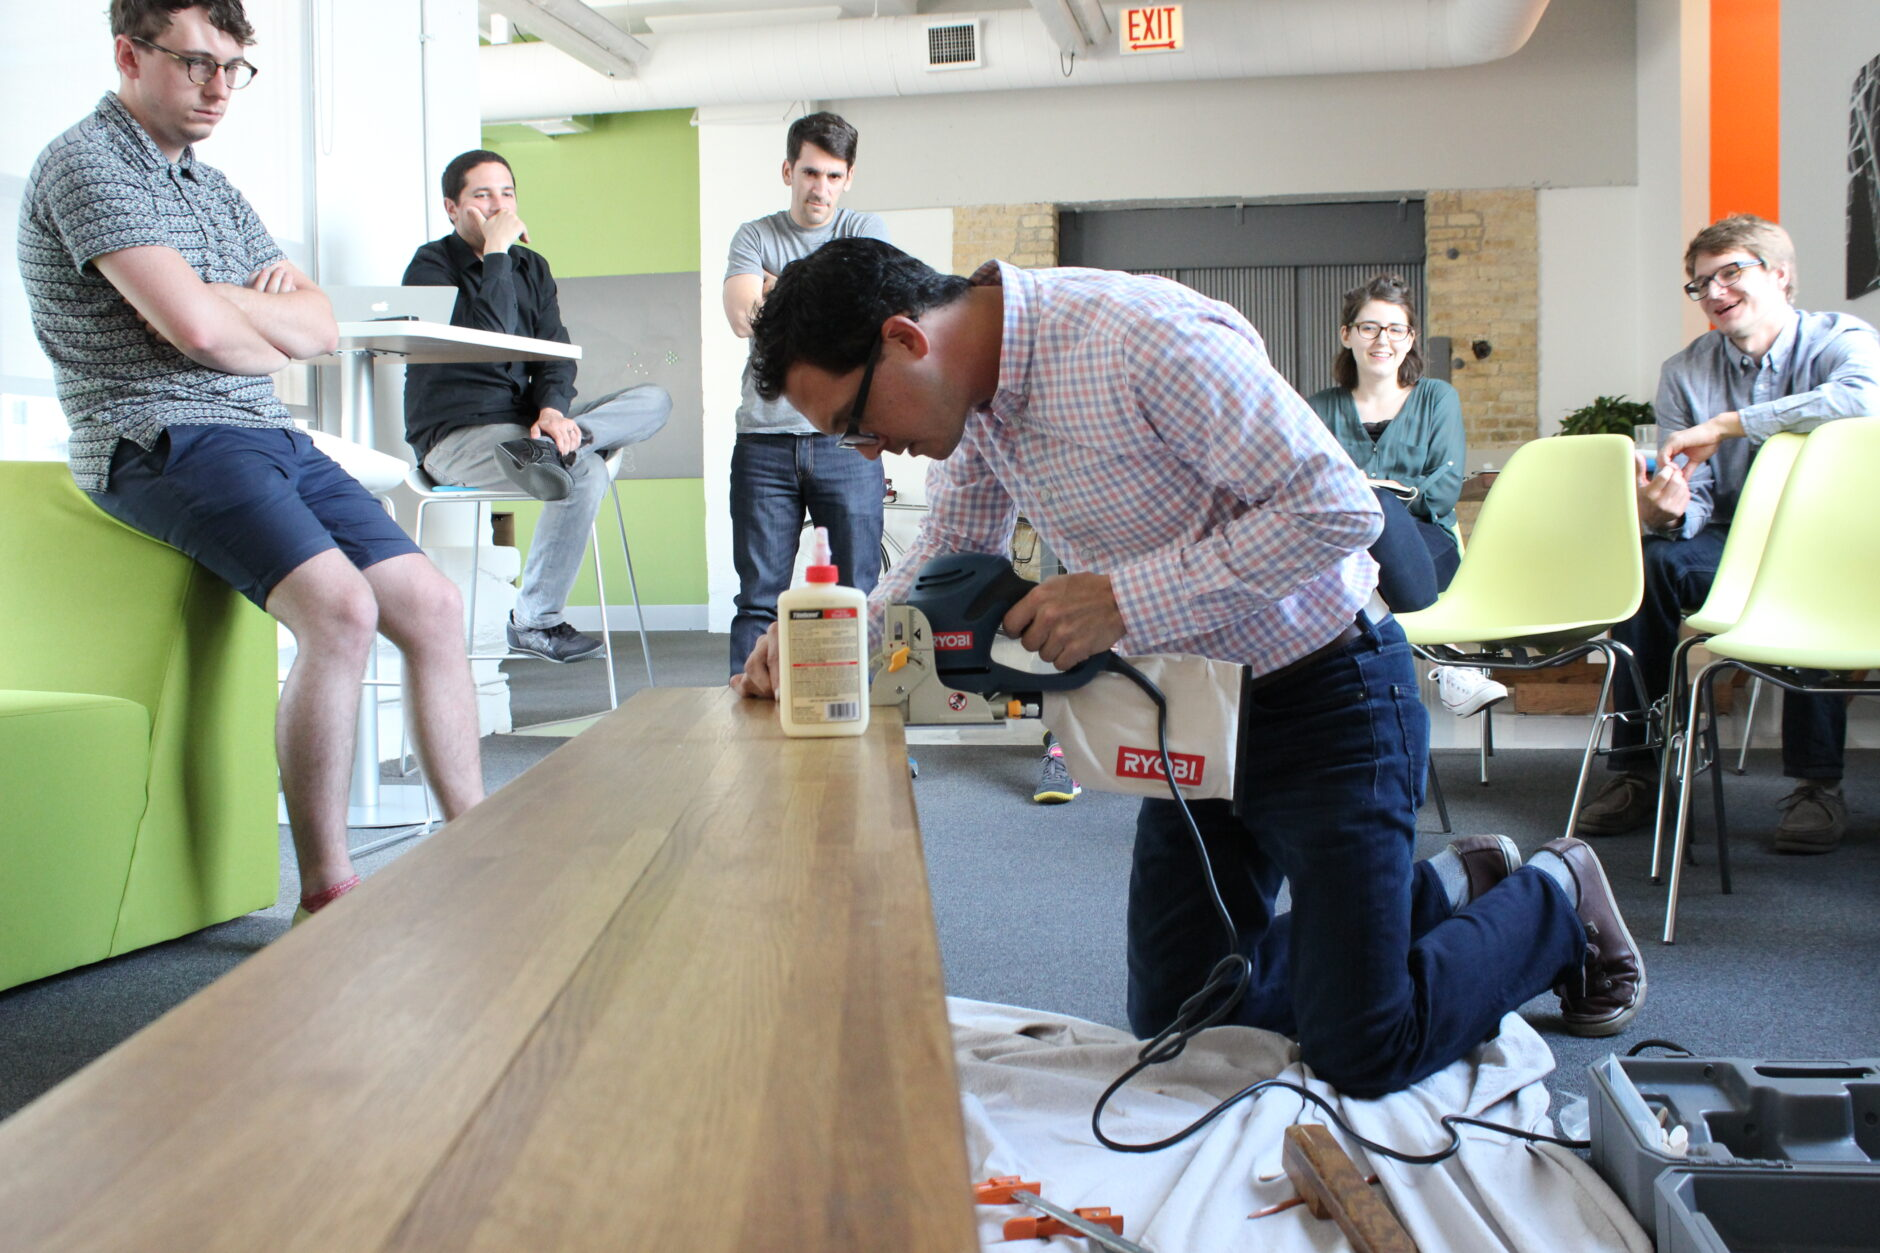 Mark building a bench during a skill share activity surrounded by co-workers watching in amusement.